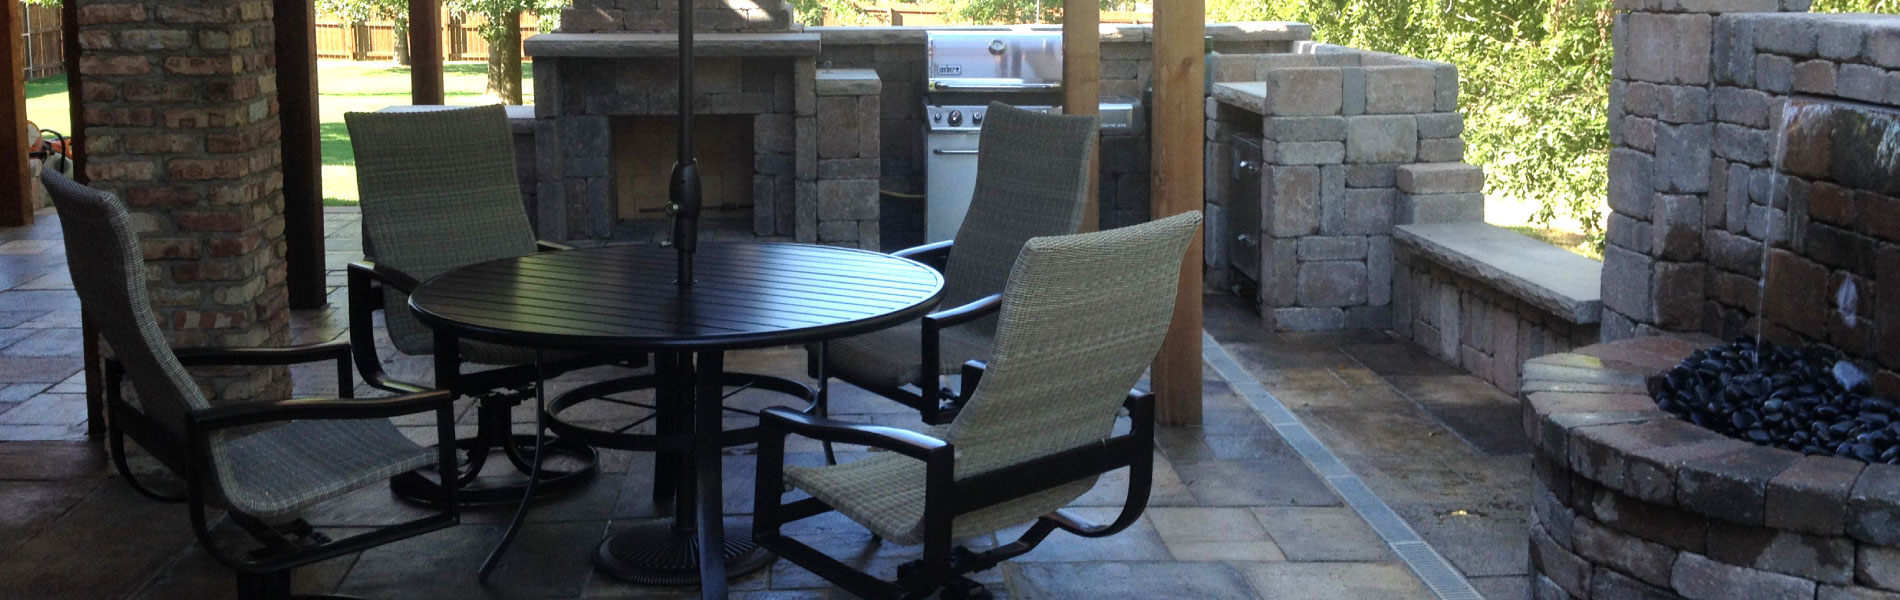 outdoor patio designs in northwest Arkansas